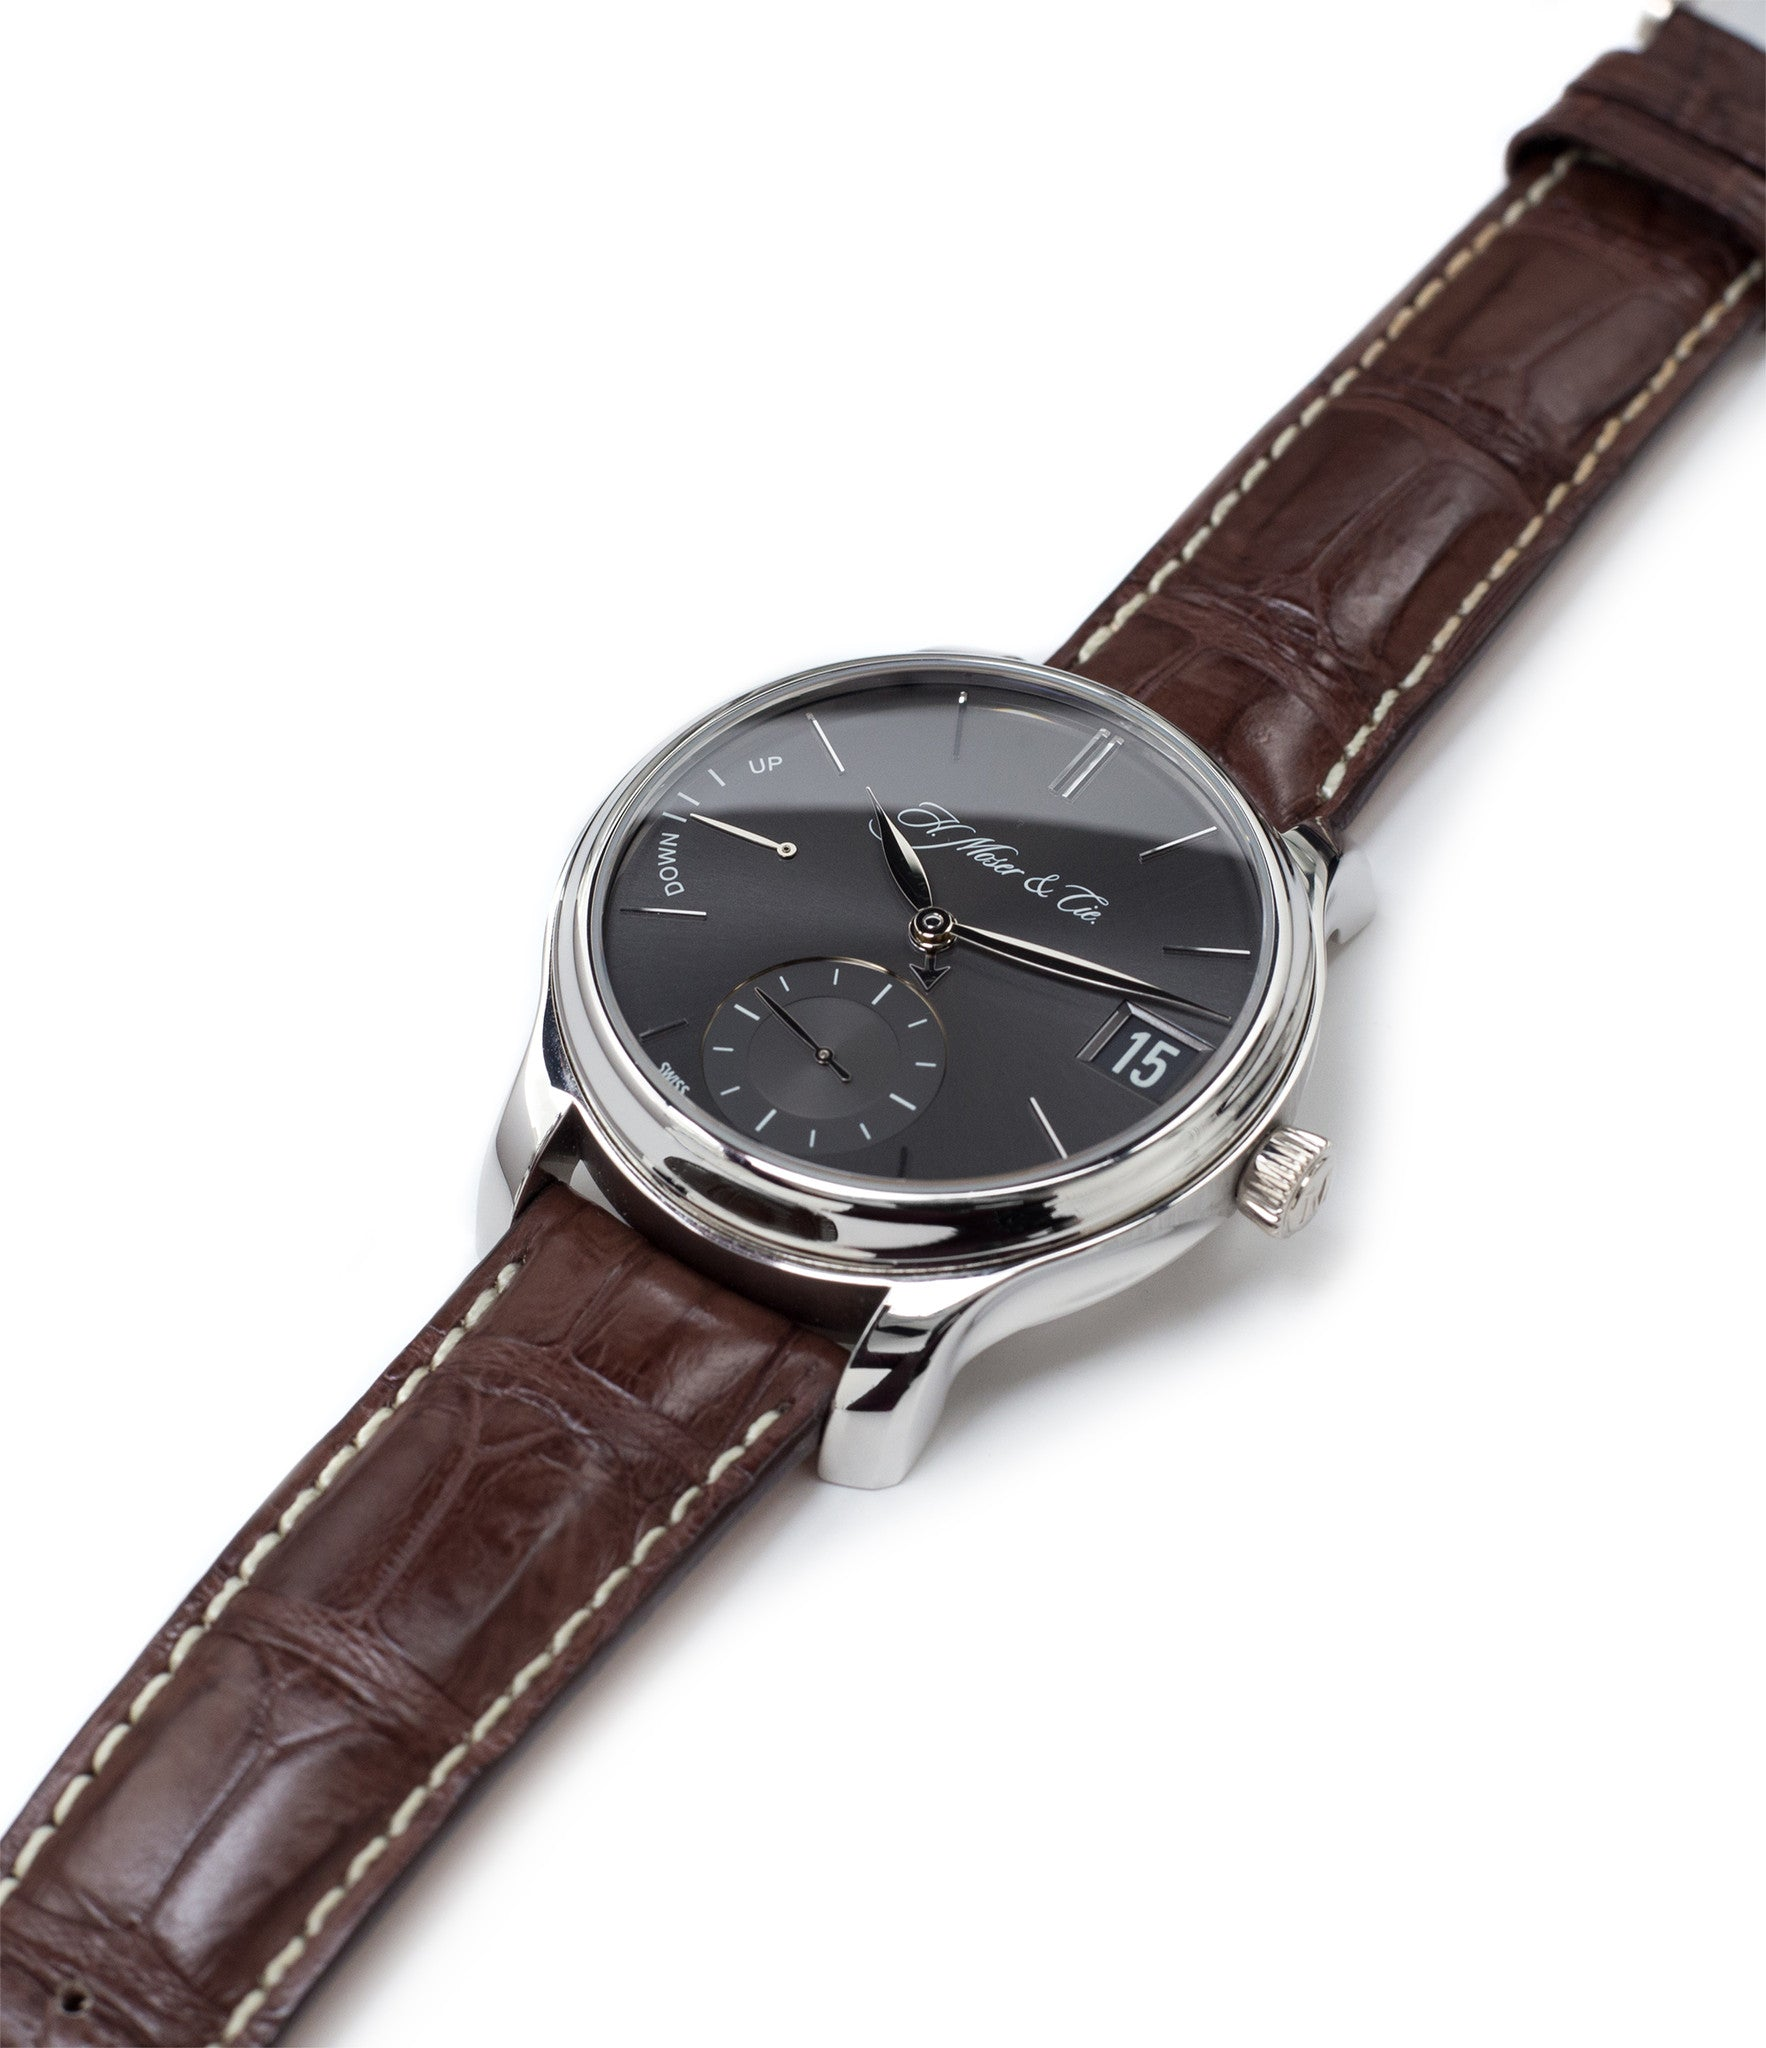 buy H. Moser & Cie. Perpetual Calendar 1341 platinum grey dial preowned watch at A Collected Man